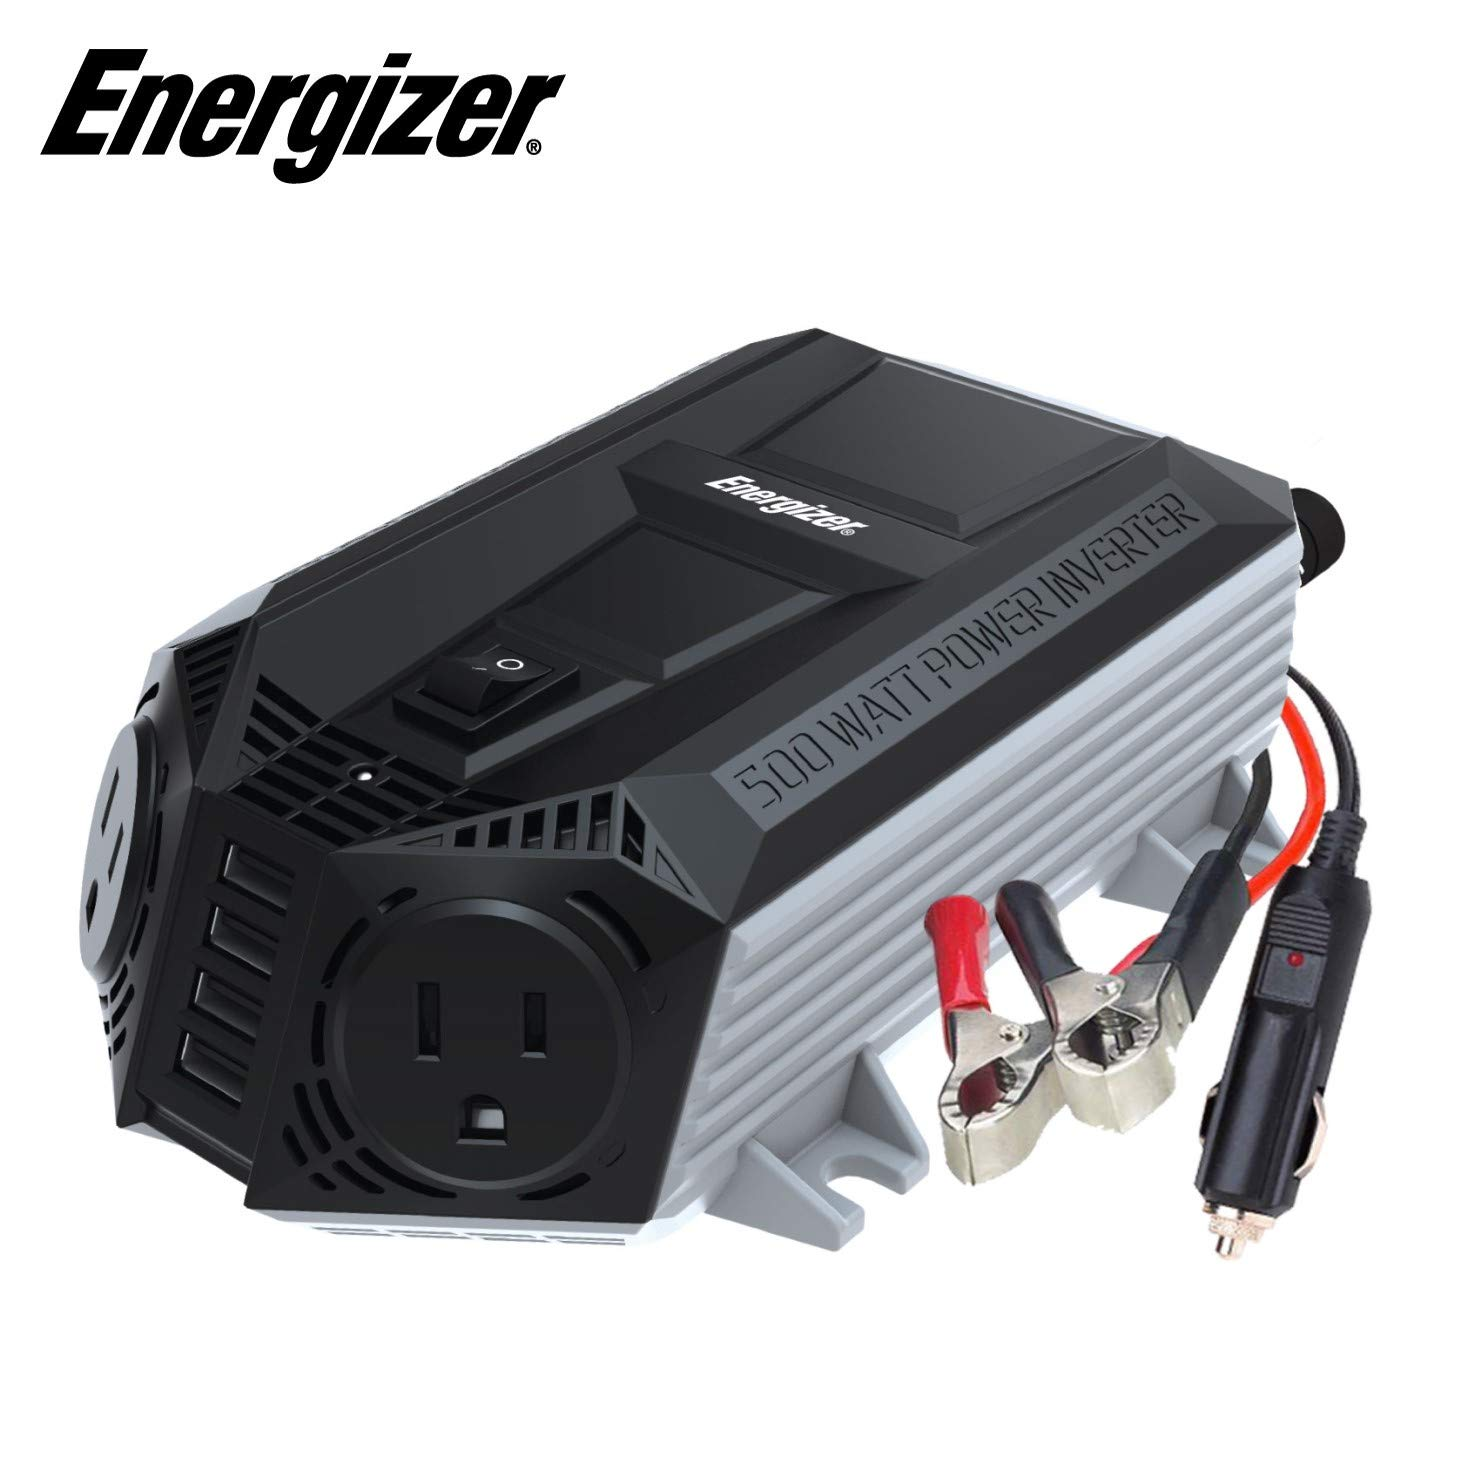 Energizer 500 Watts Power Inverter DC 12V to 110V AC Converter